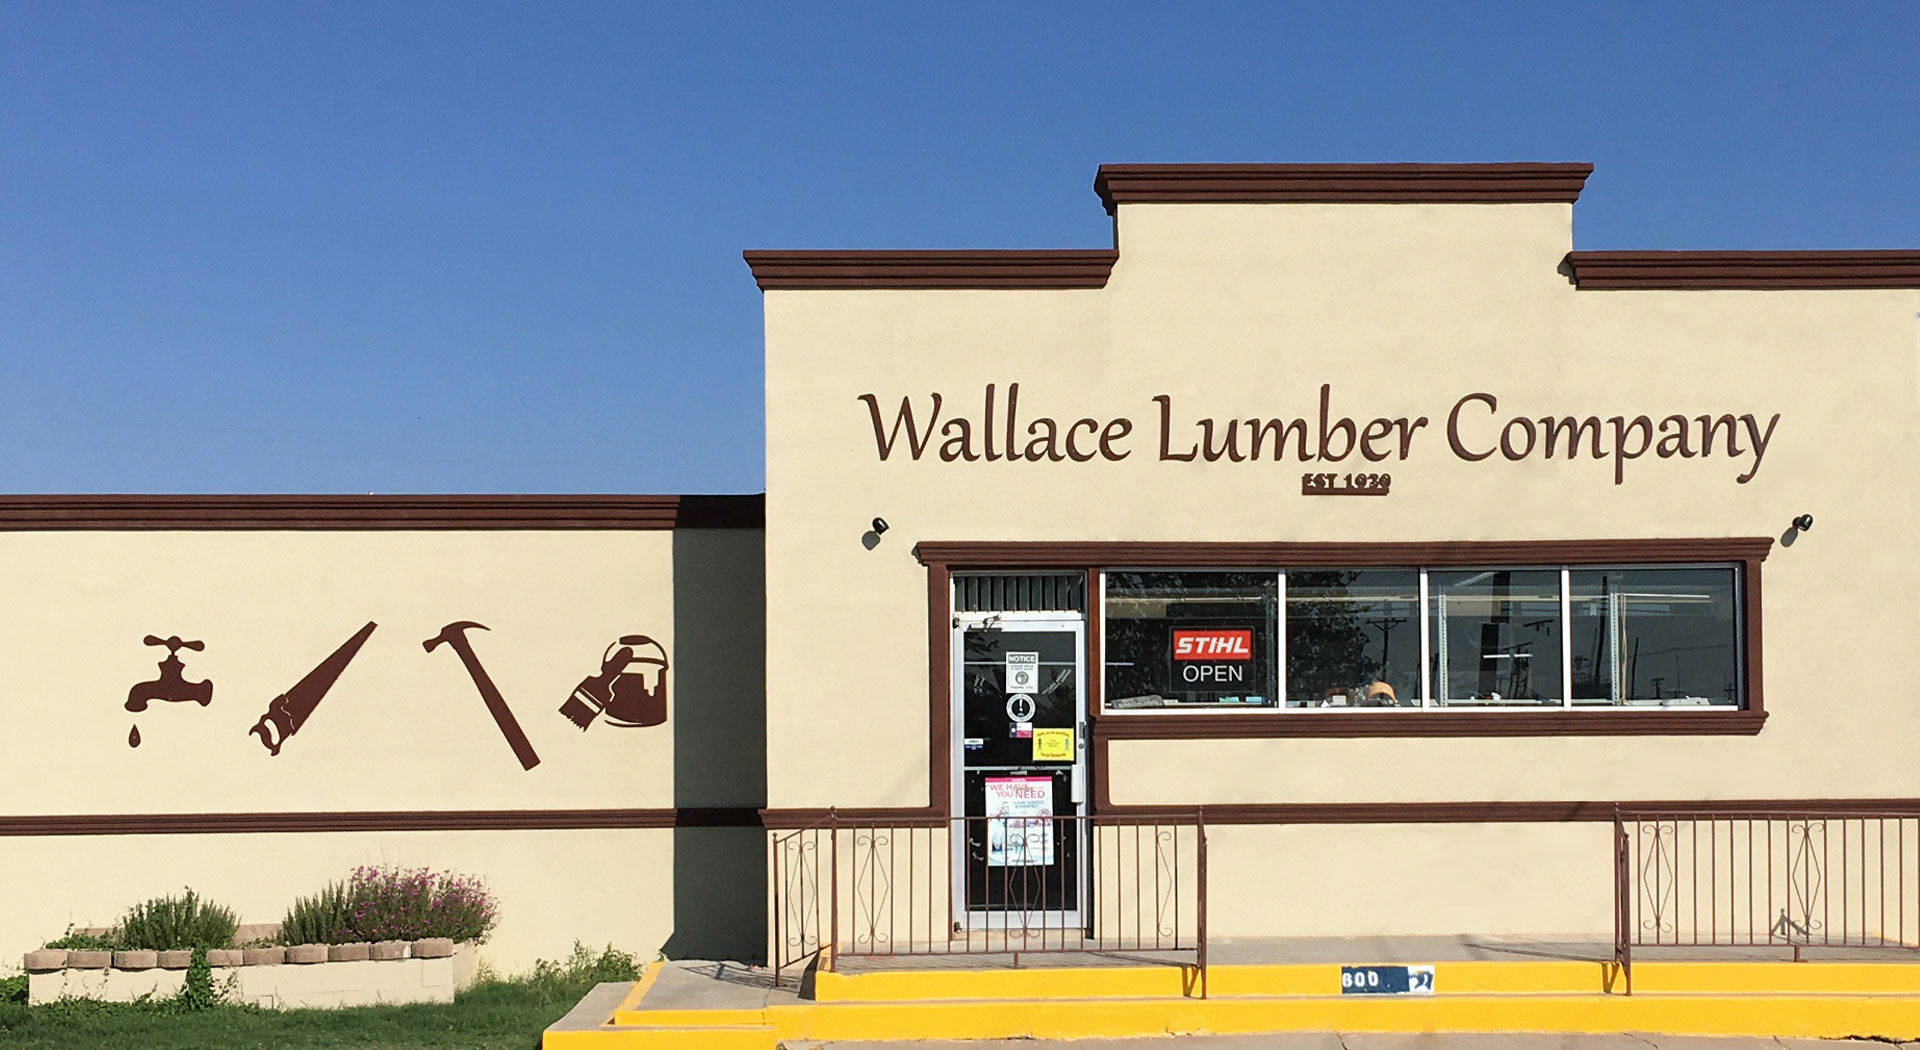 Wallace Lumber Company storefront, which is located in Fort Stockton, Texas, at 600 N. Nelson